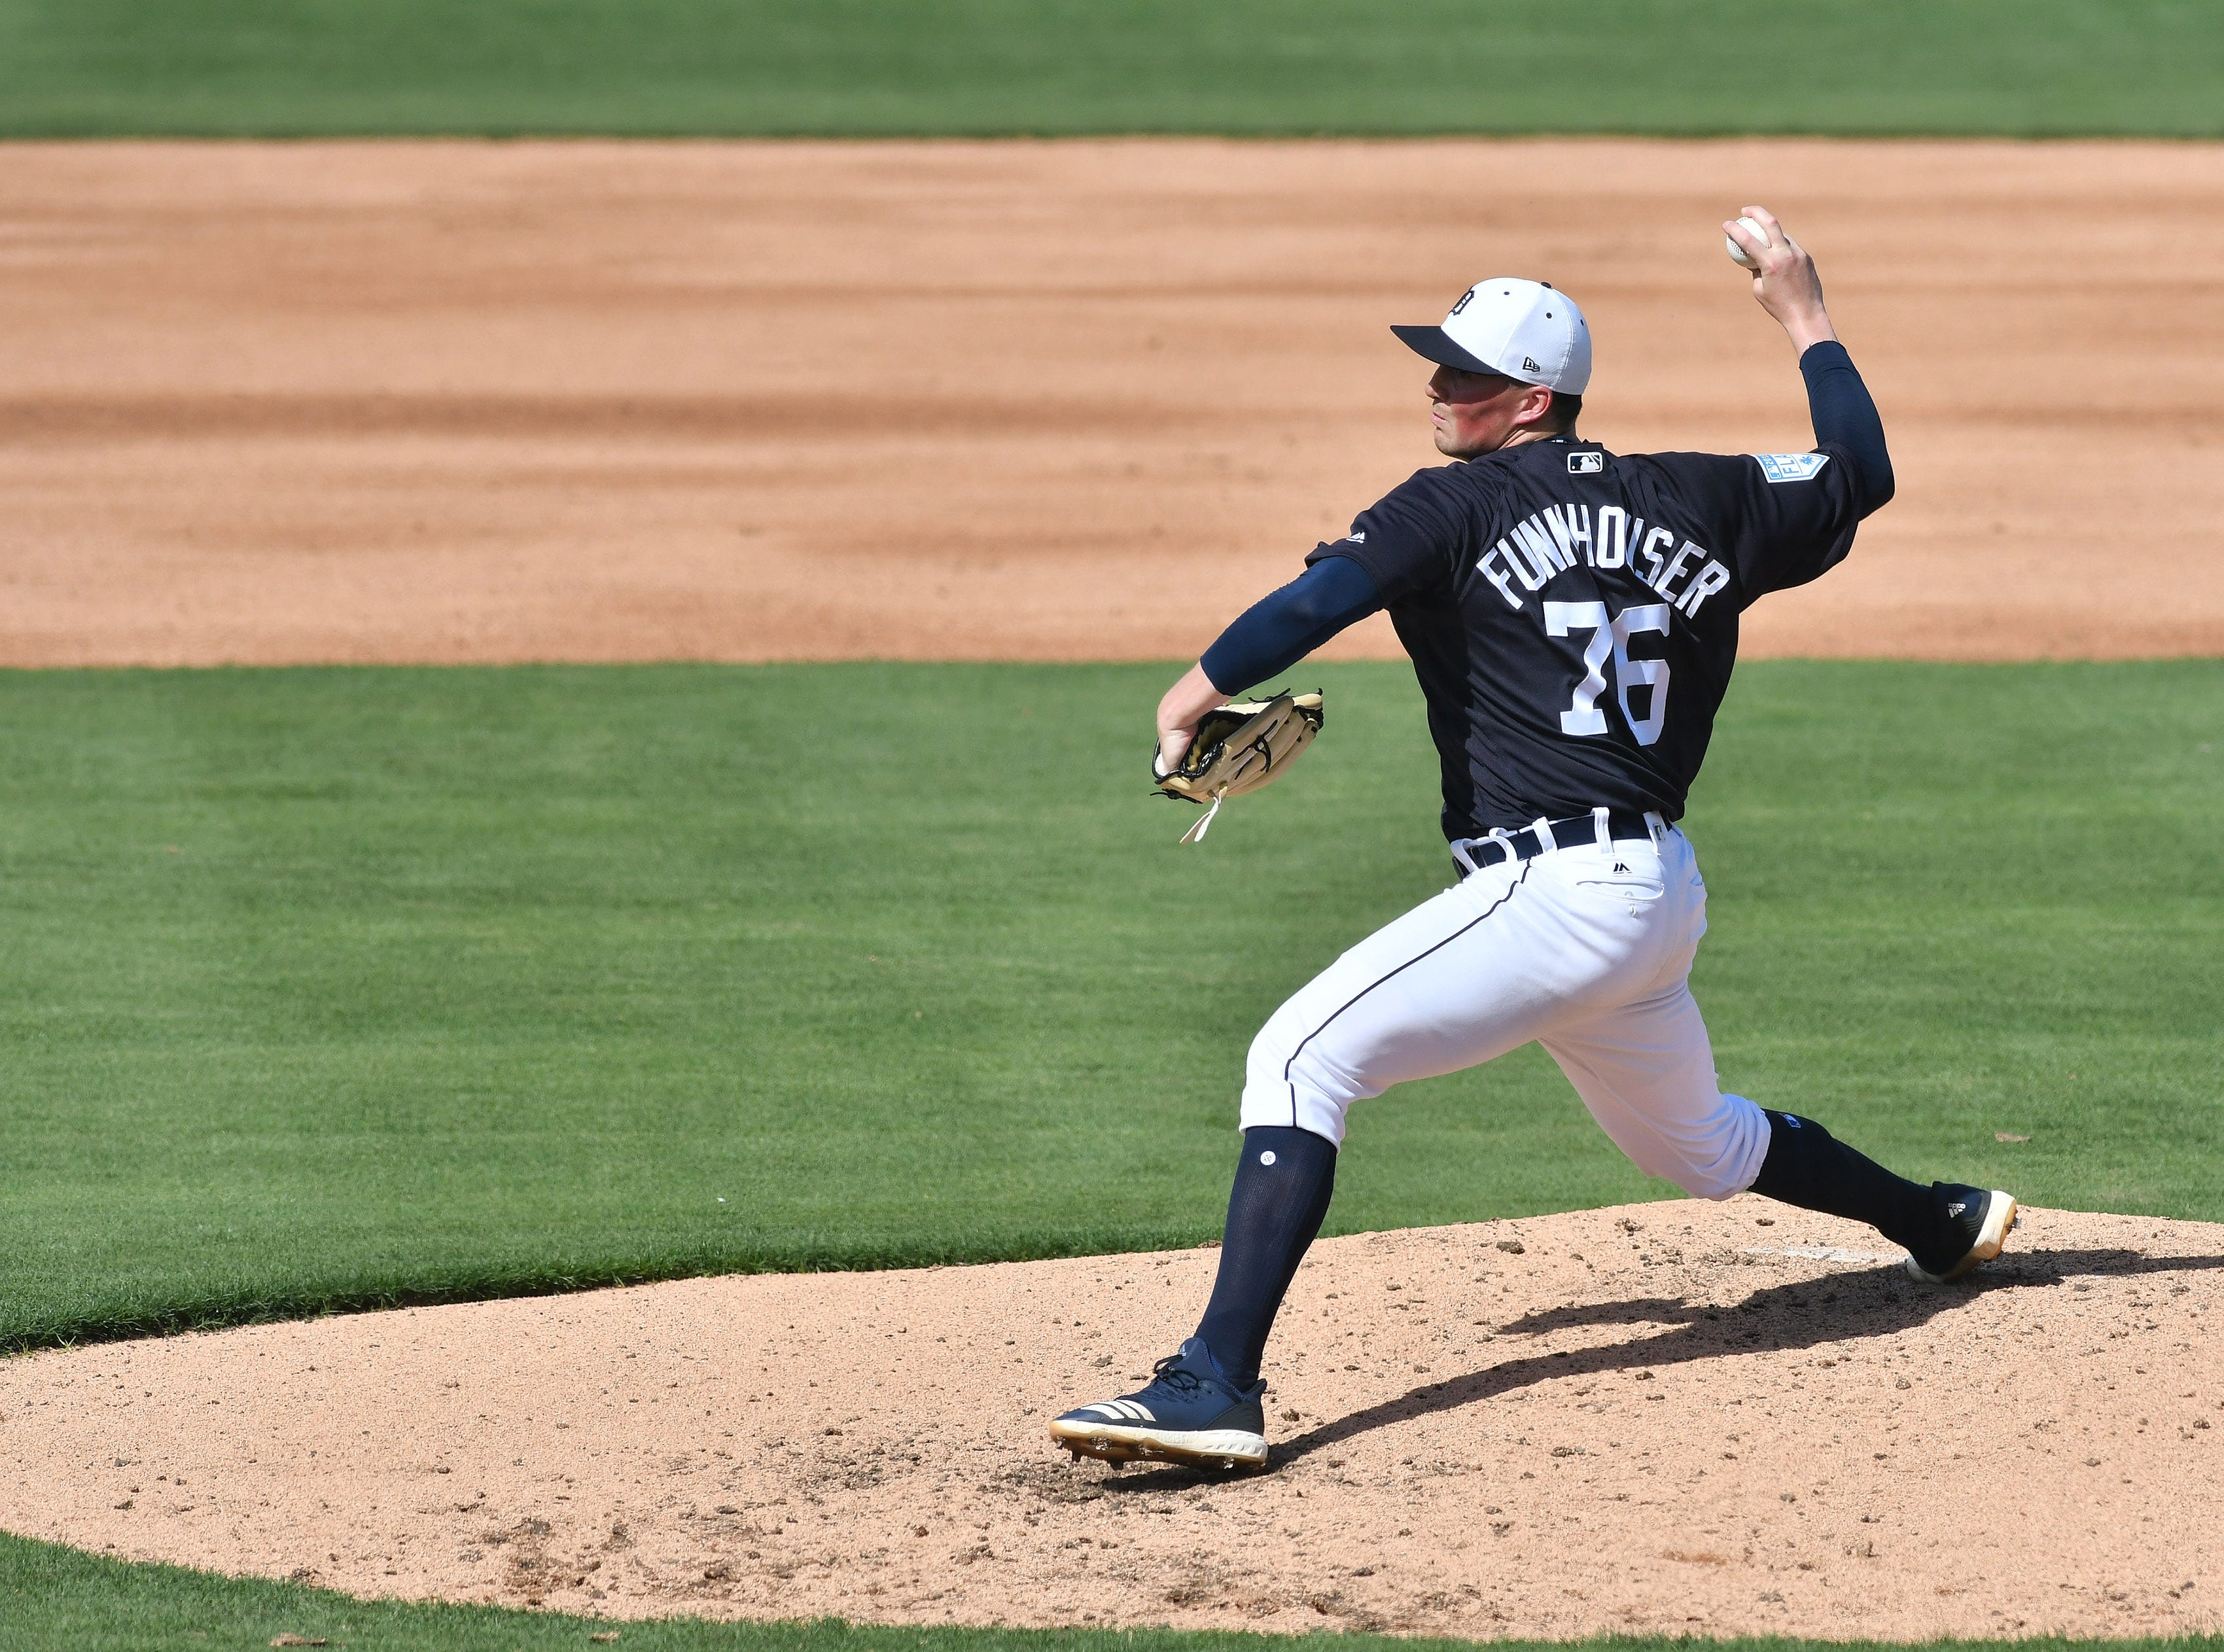 Tigers non-roster invitee Kyle Funkhouser works in the fifth inning.  Funkhouser pitched two hitless innings with four strikeouts.